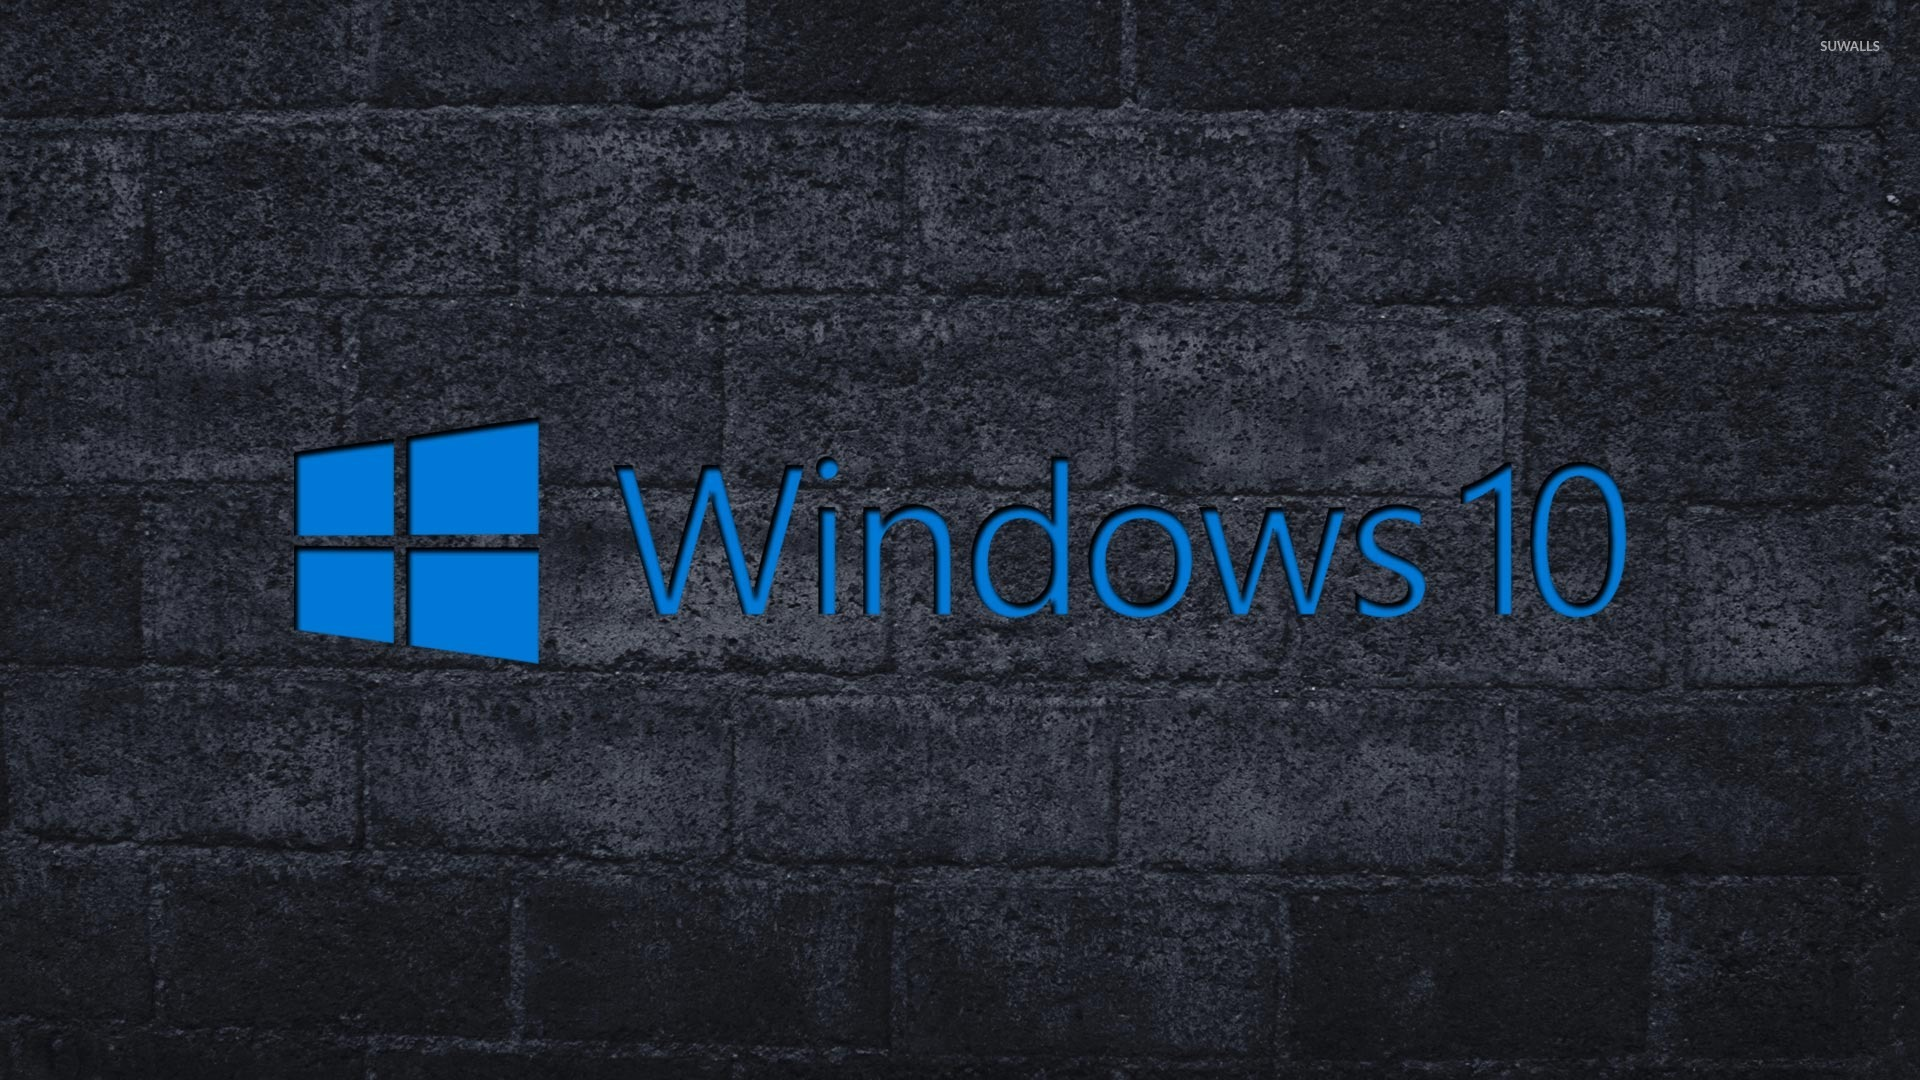 Black Windows 10 Wallpaper Computer Wallpapers 49873